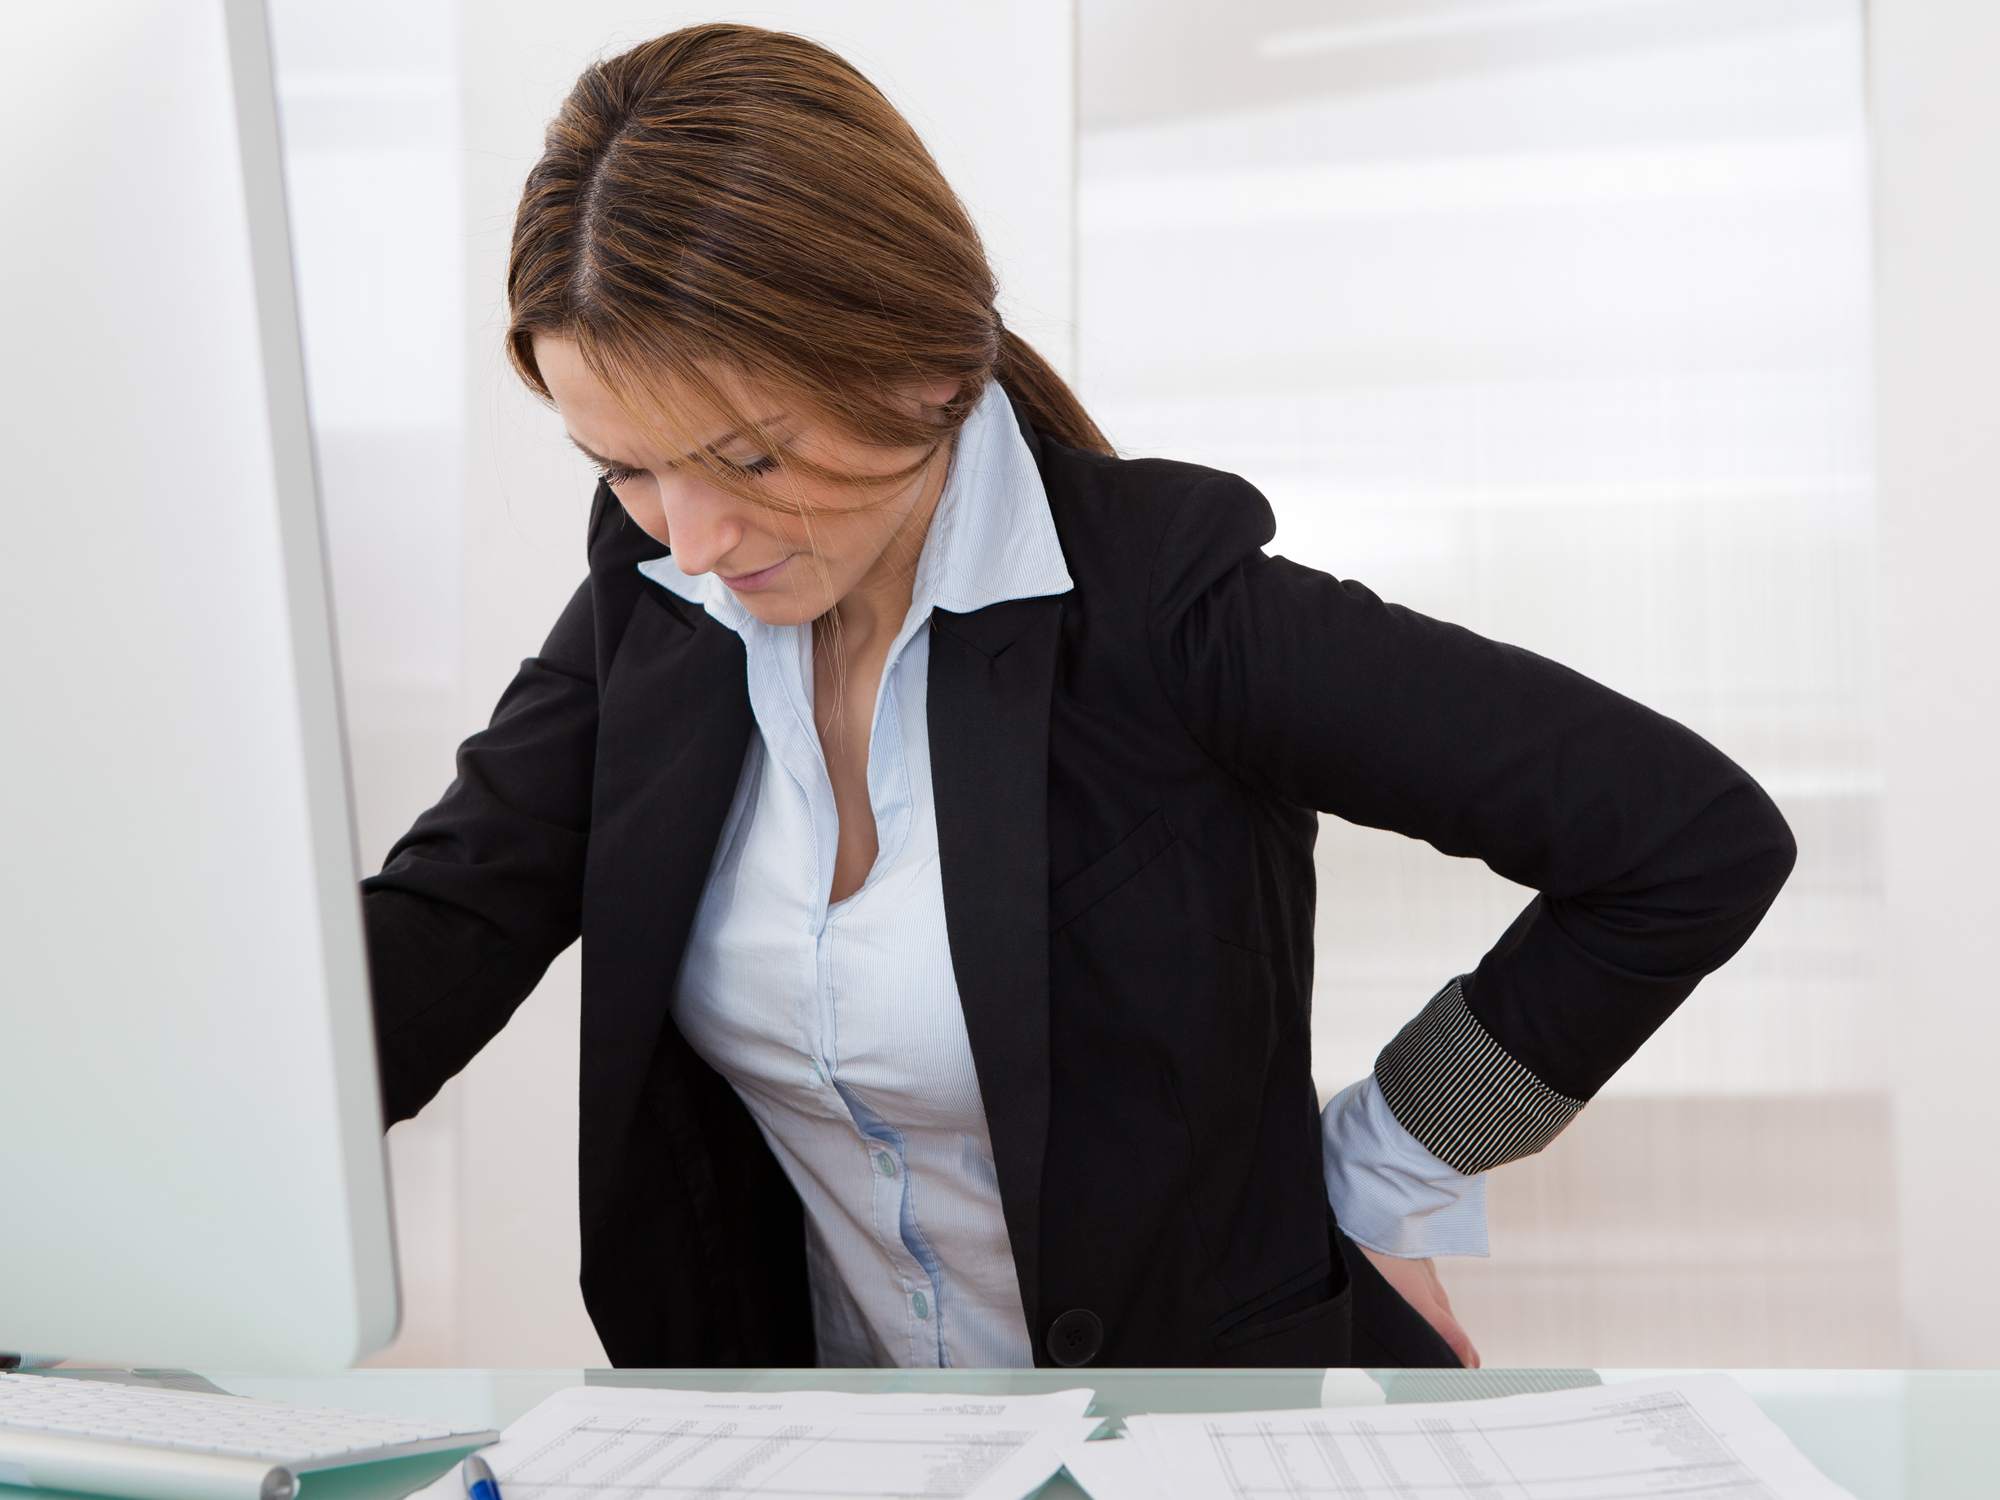 5 safe moves to prevent back pain - Easy Health Options®